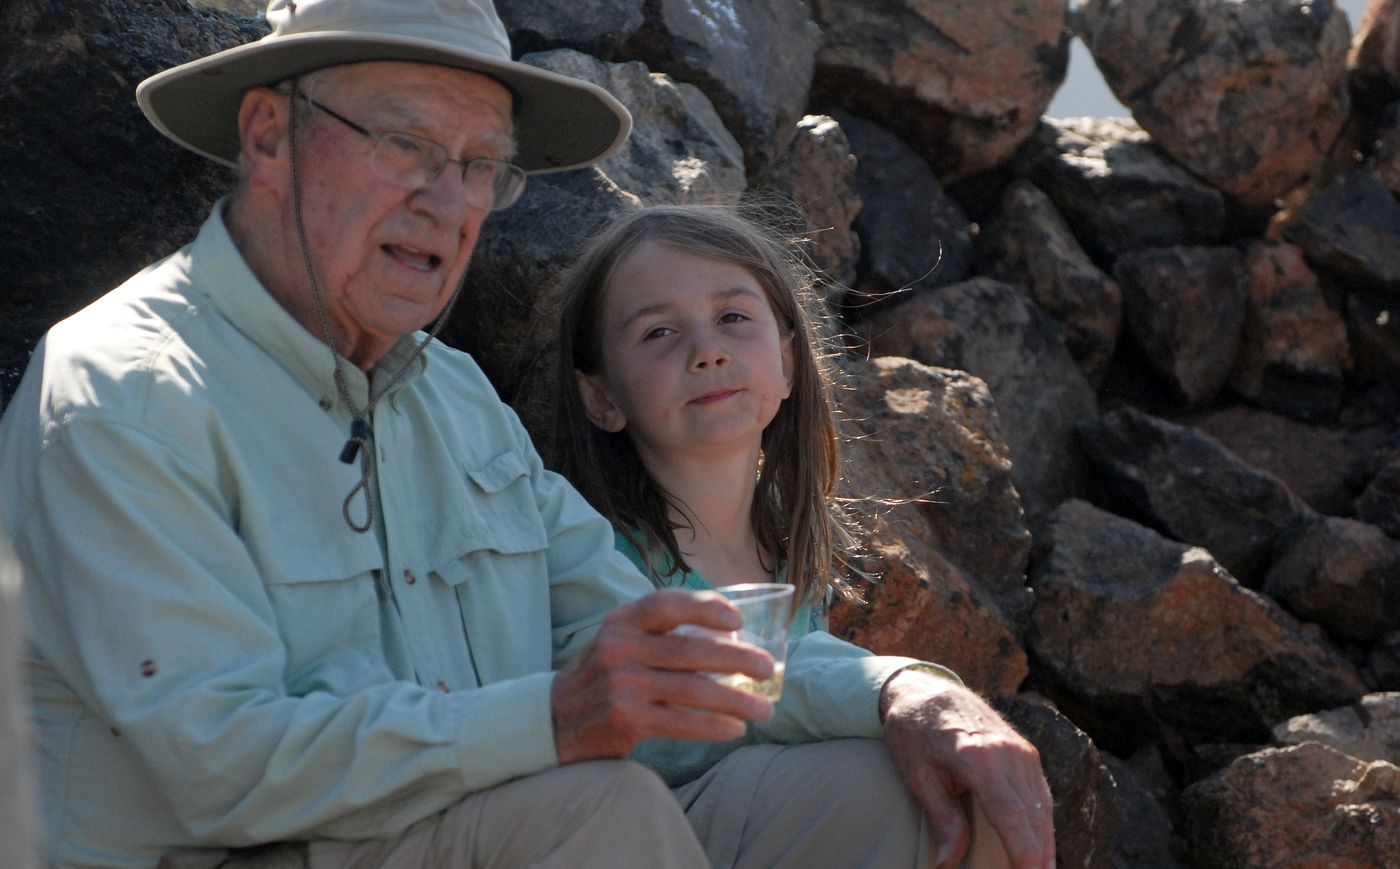 Kierstin Clark sits next to her great-grandfather, George Wooliver, after climbing to the top of Flattop Mountain in Chugach State Park on Friday, July 5, 2019. (CORRECTION: A previous version of this caption said Clark is Wooliver's granddaughter). (Matt Tunseth / ADN)